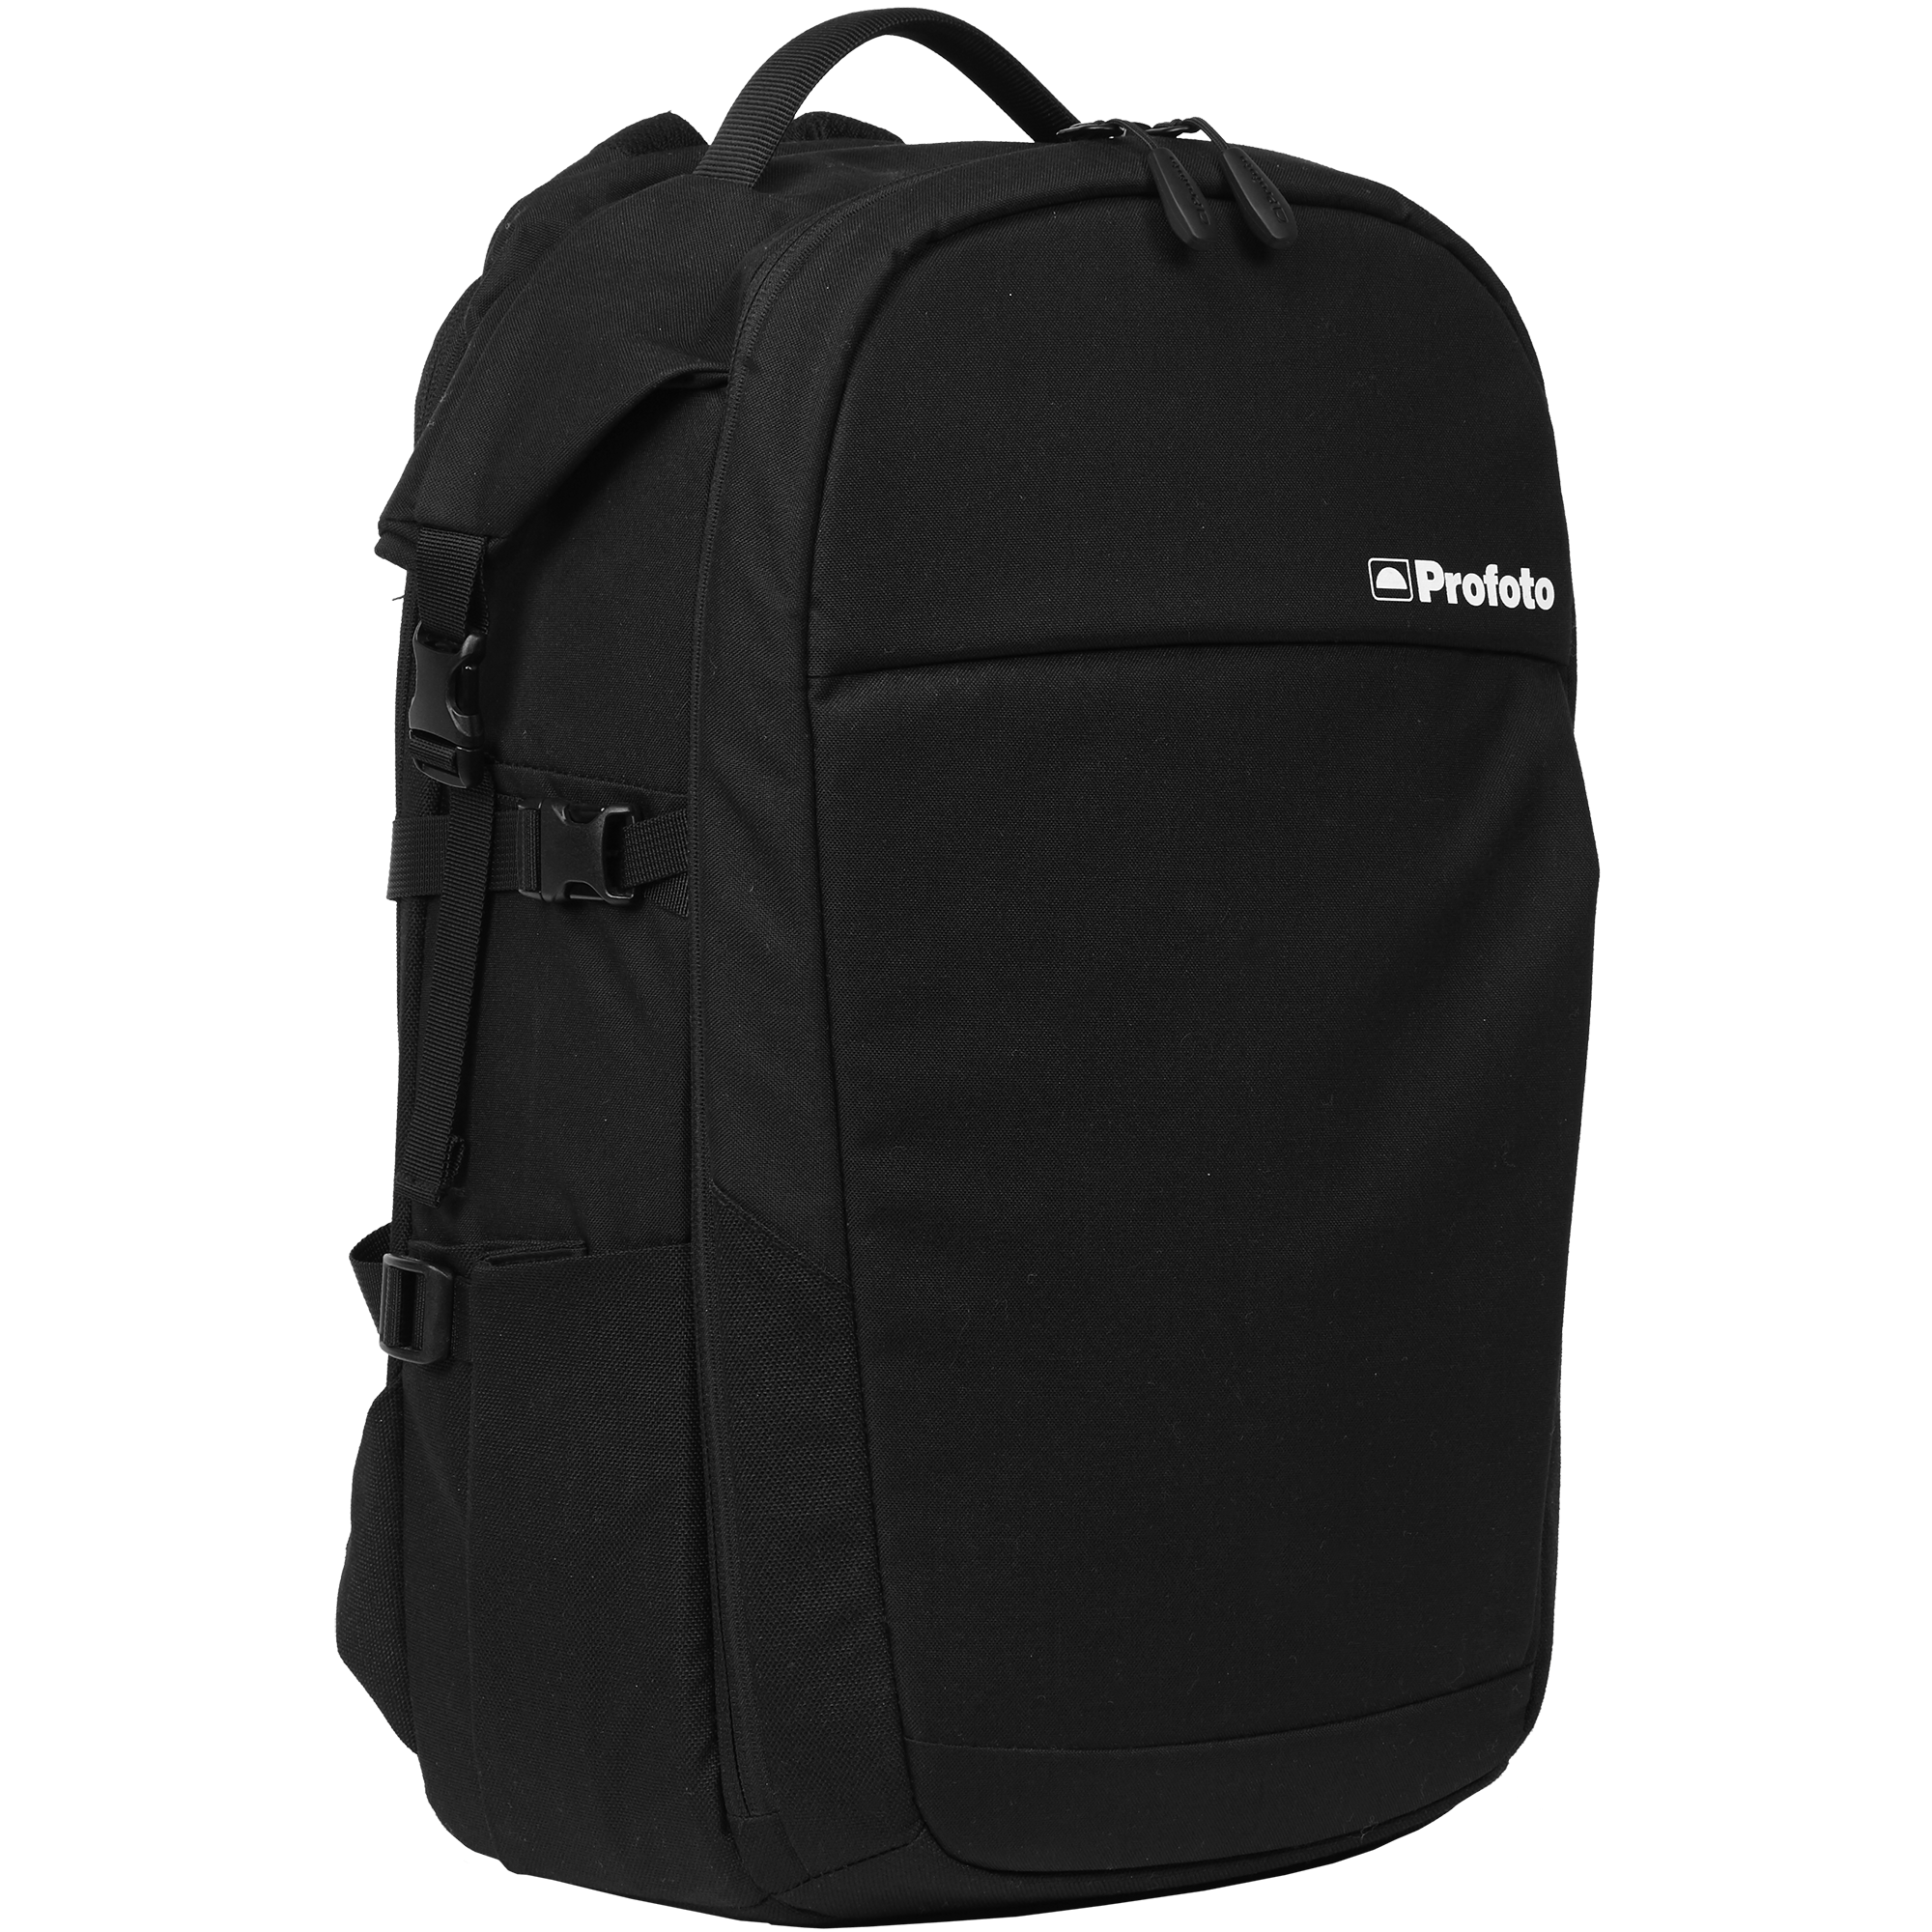 330241 D Profoto Core Back Pack S Angle Front Product Image